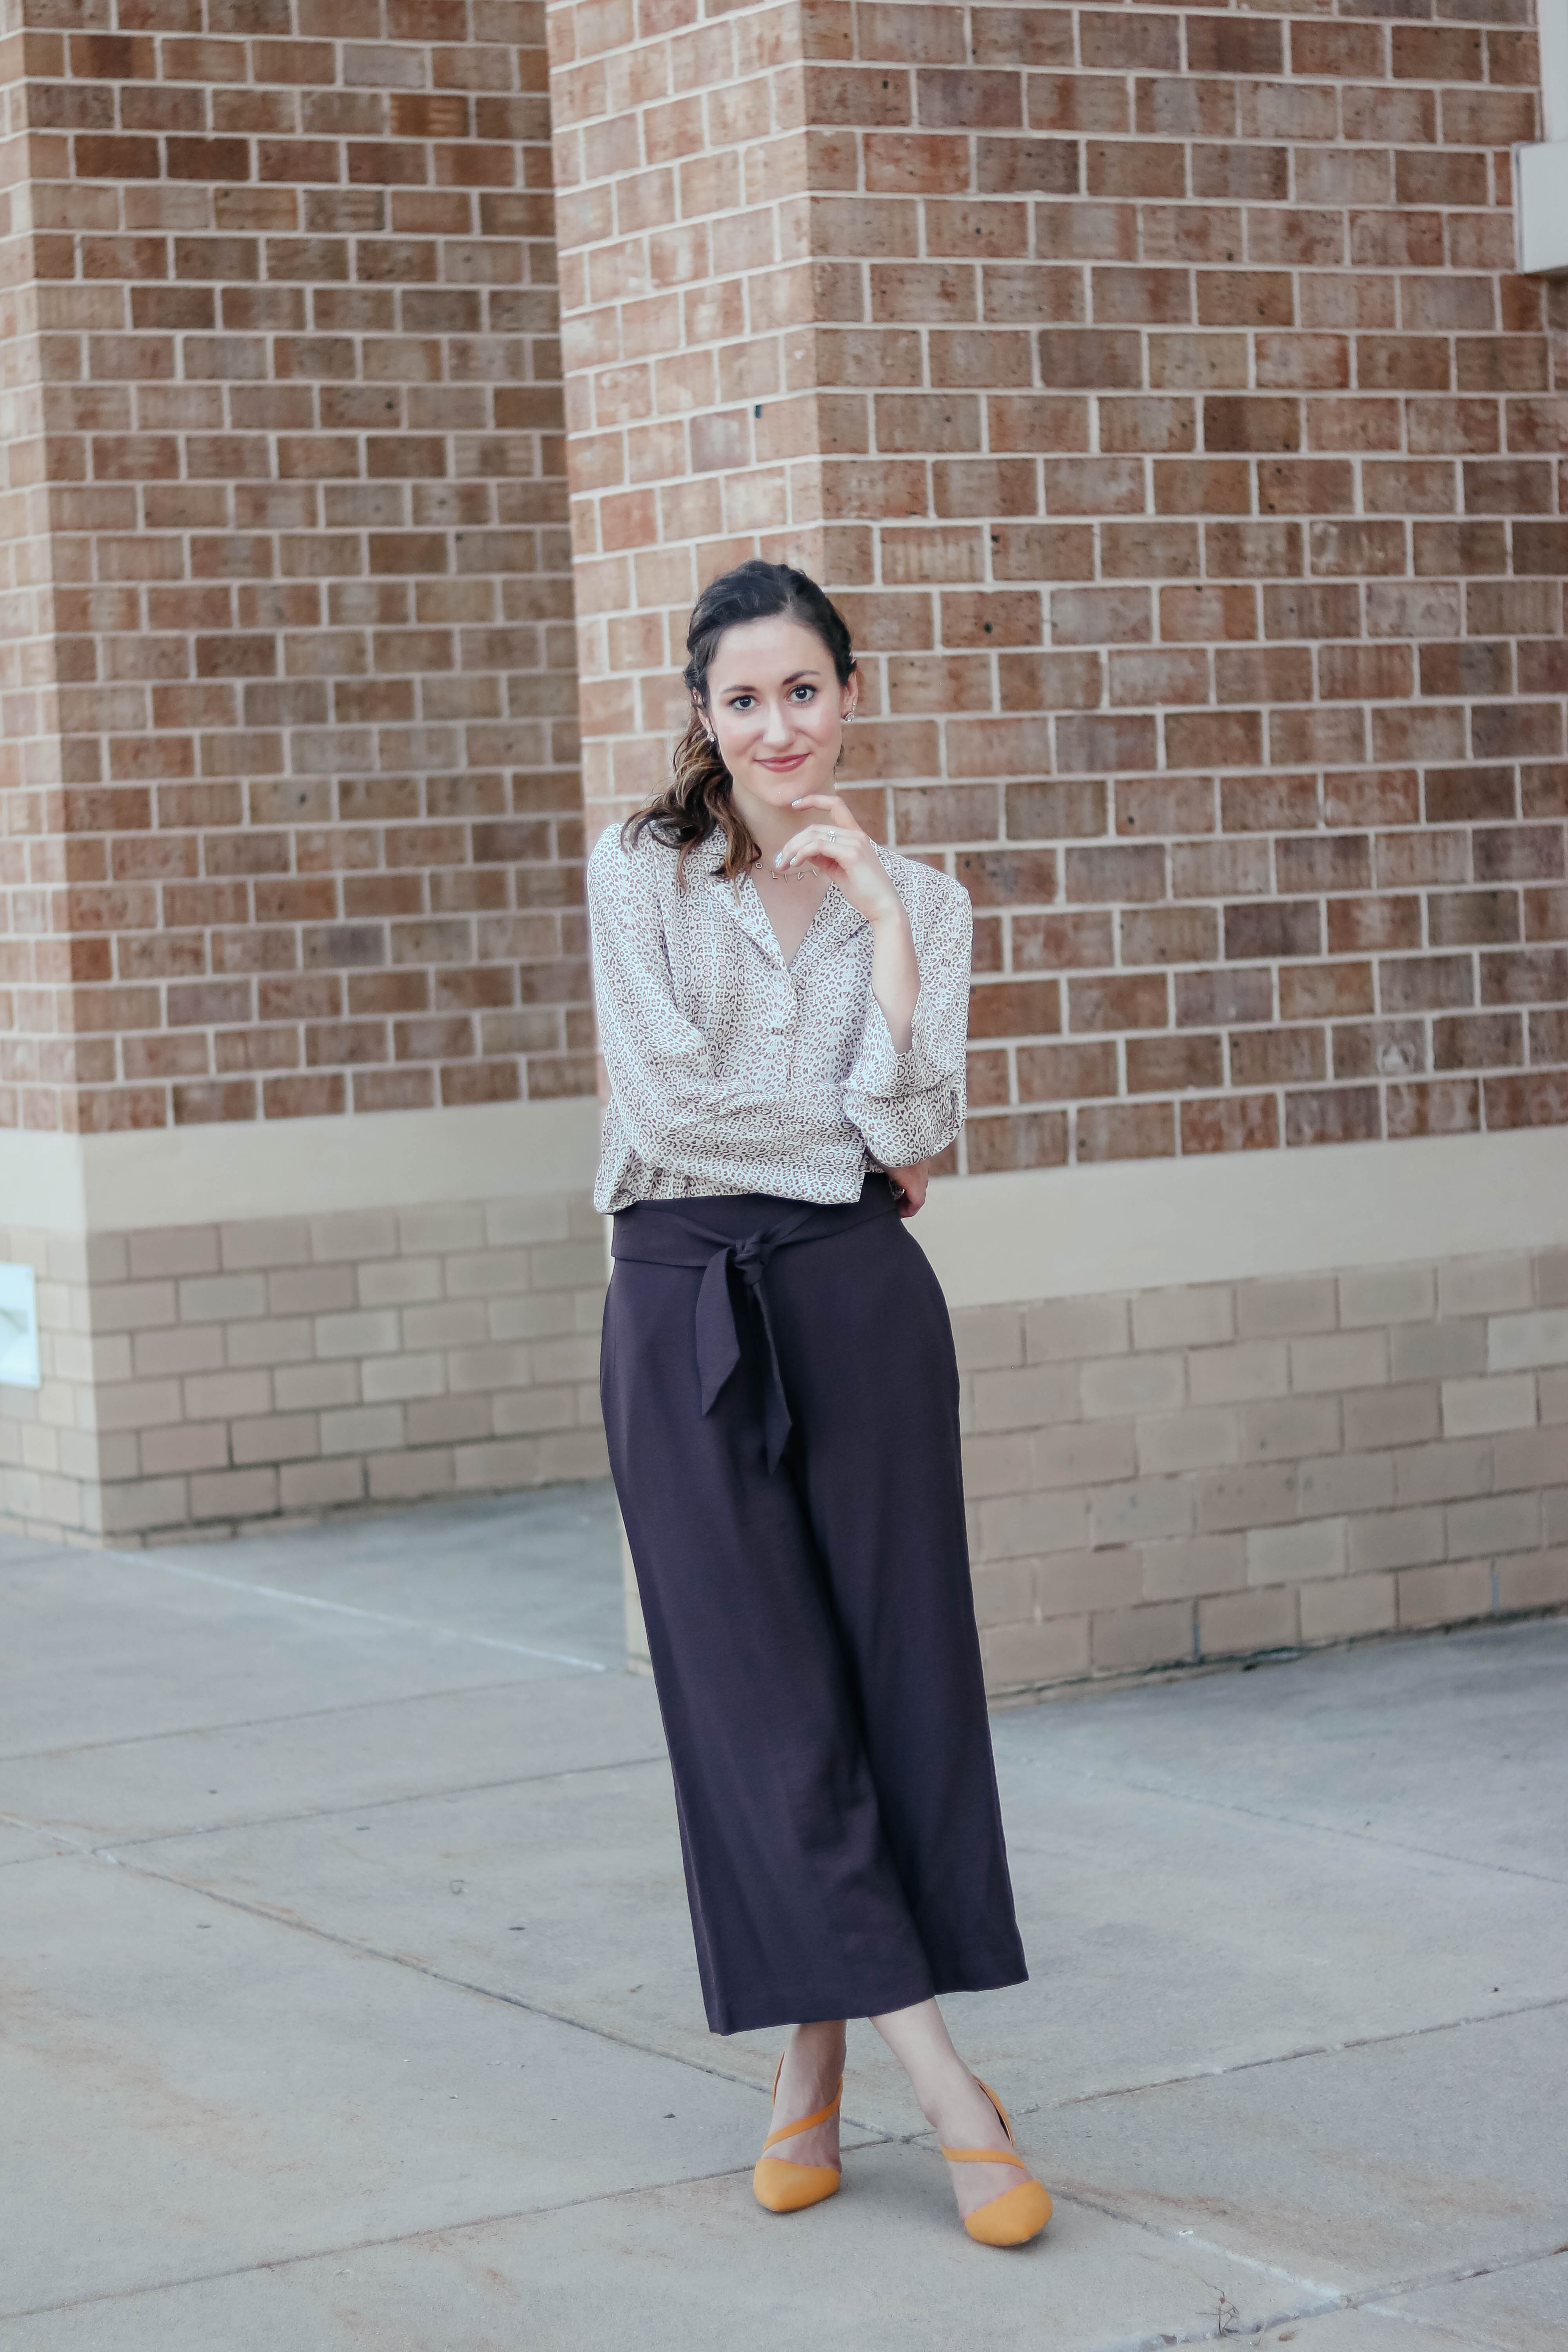 The Best of the NSALE: WORKWEAR (A Week's Worth of Office-Worthy Outfits!) - on Coming Up Roses